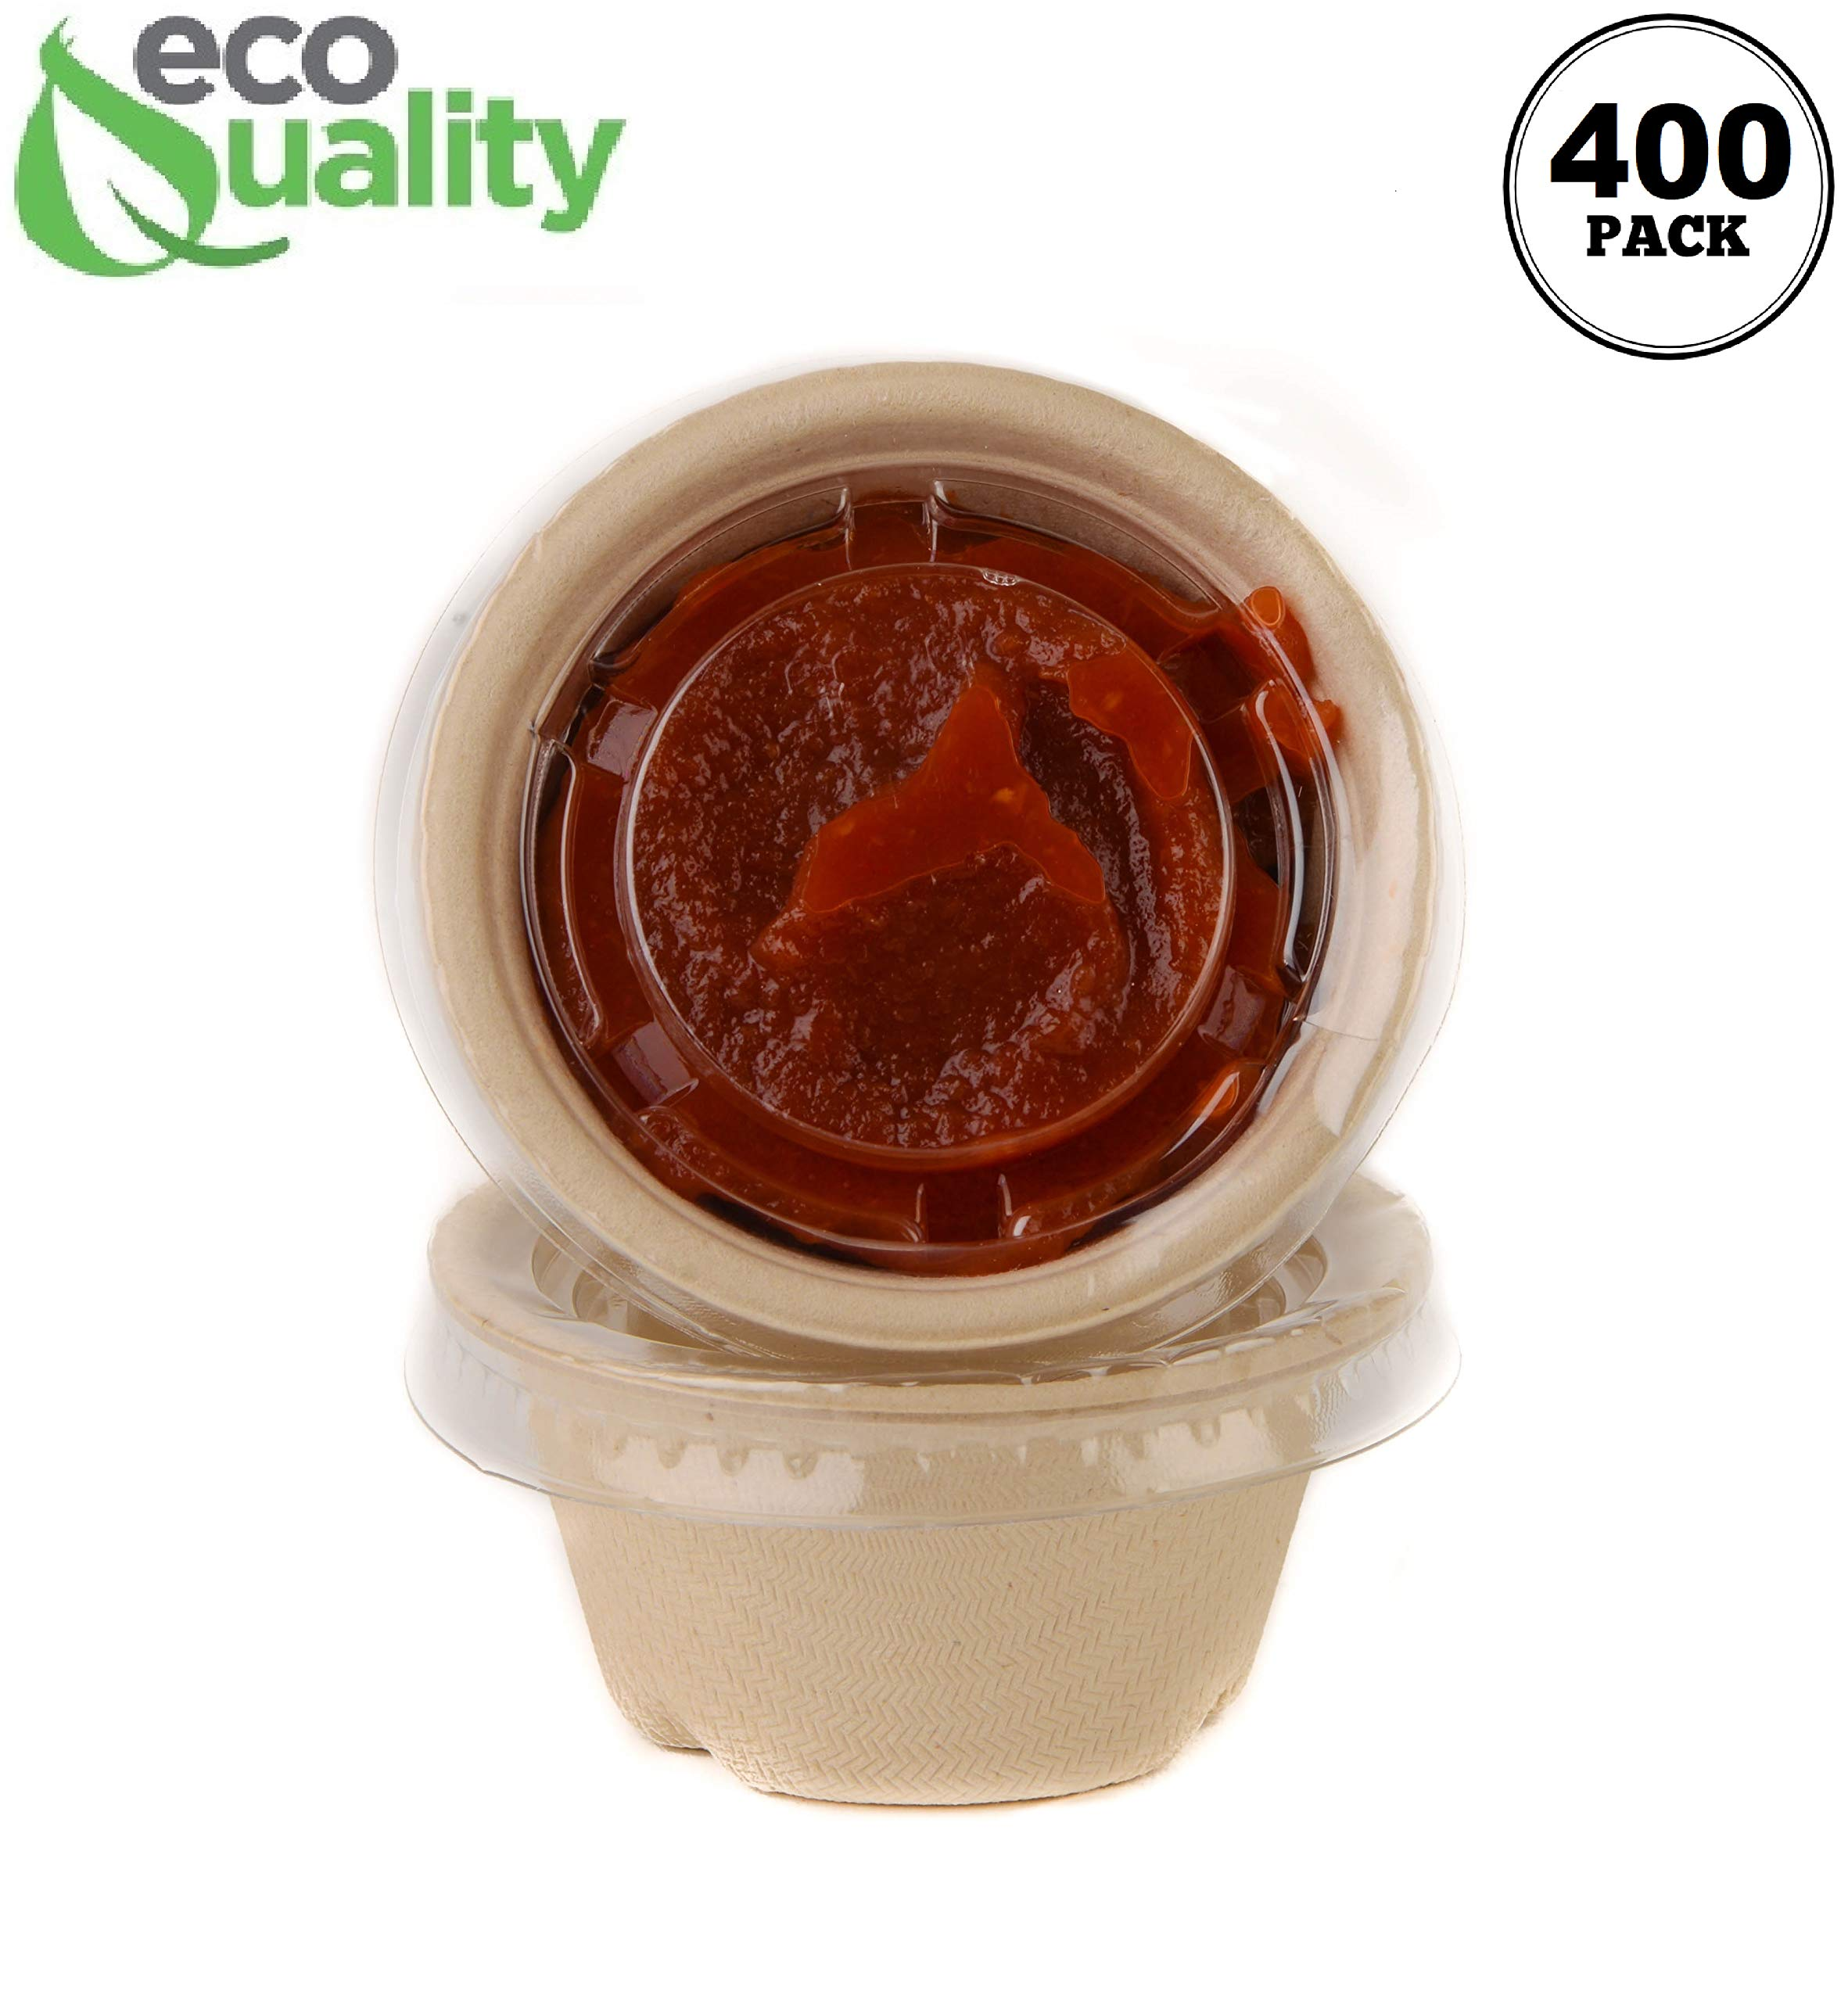 [400 Pack] 2 Oz Compostable Condiment Souffle Bagasse Cups with Lids - Portion Cup with Lid Sugarcane, Biodegradable Perfect for Sauces, Samples, Condiments, Slime, Jello Shot, Food Storage by EcoQuality